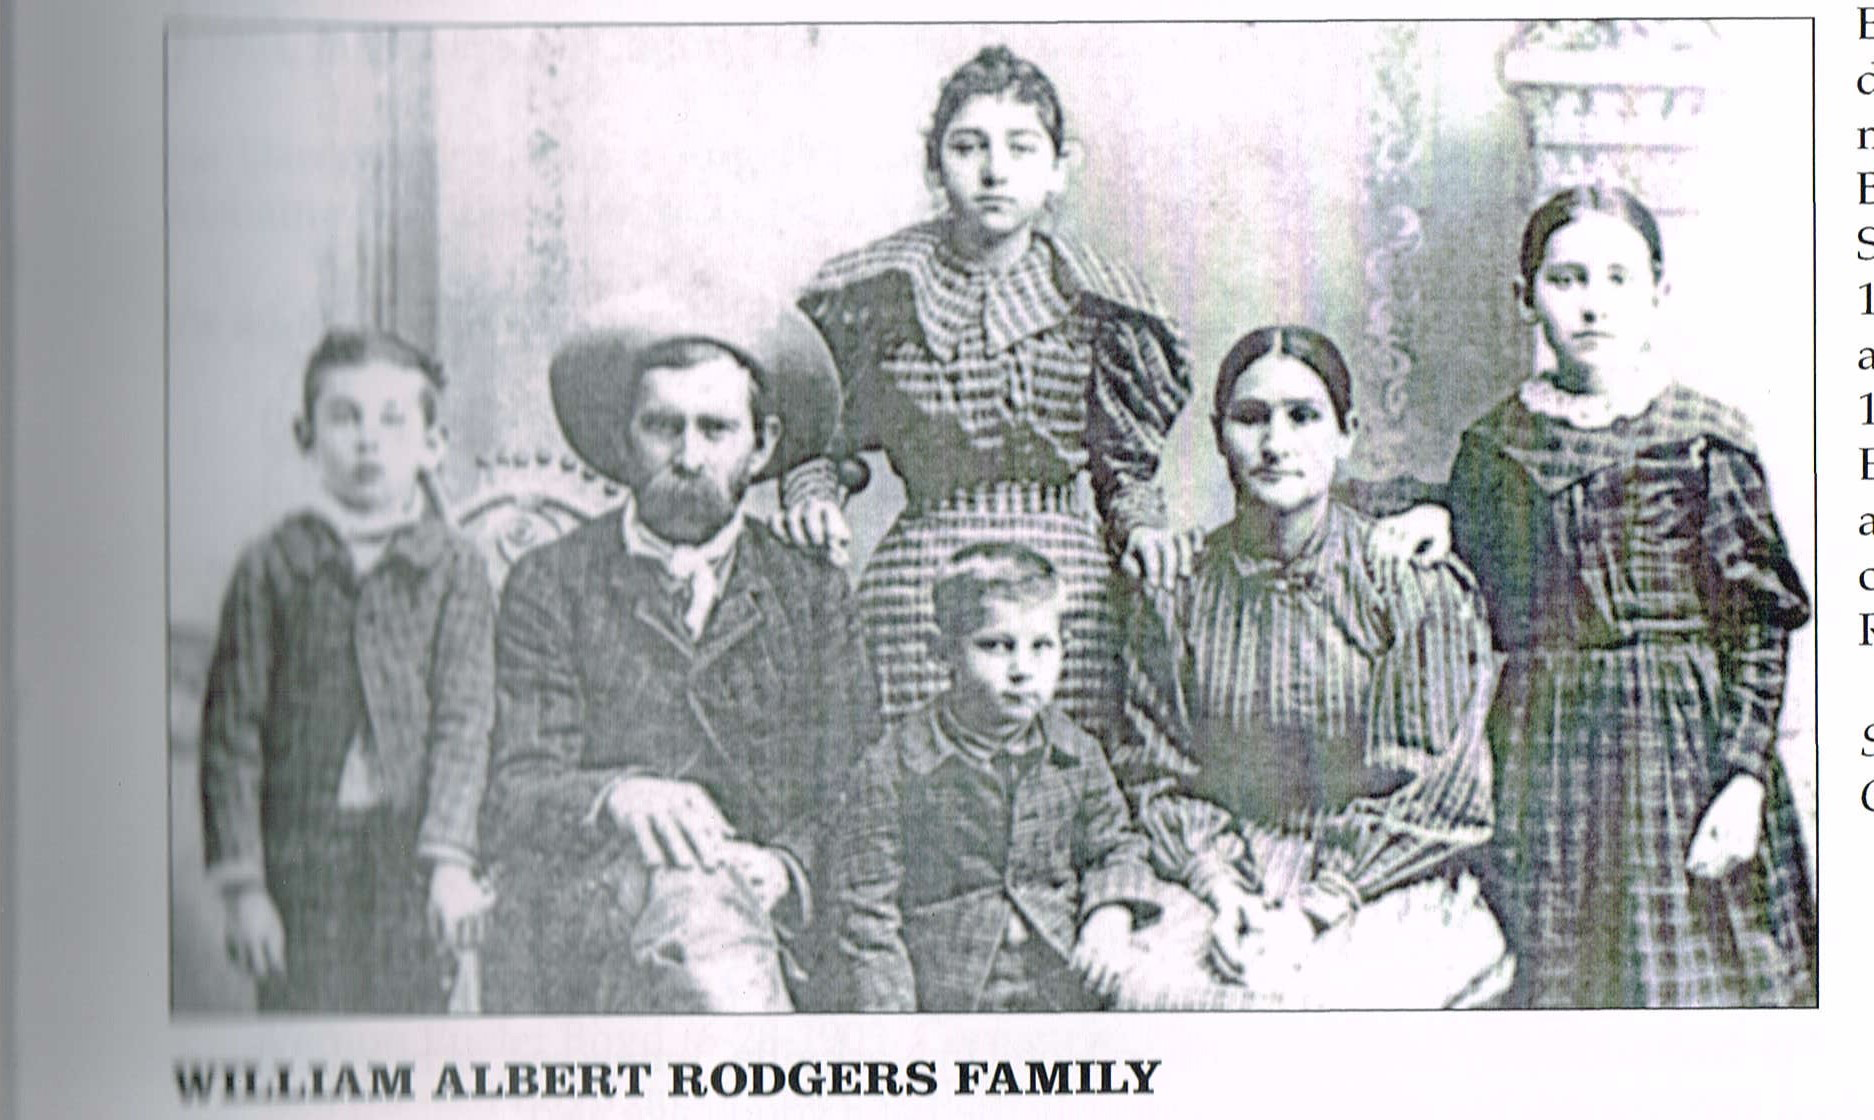 William Albert Rodgers